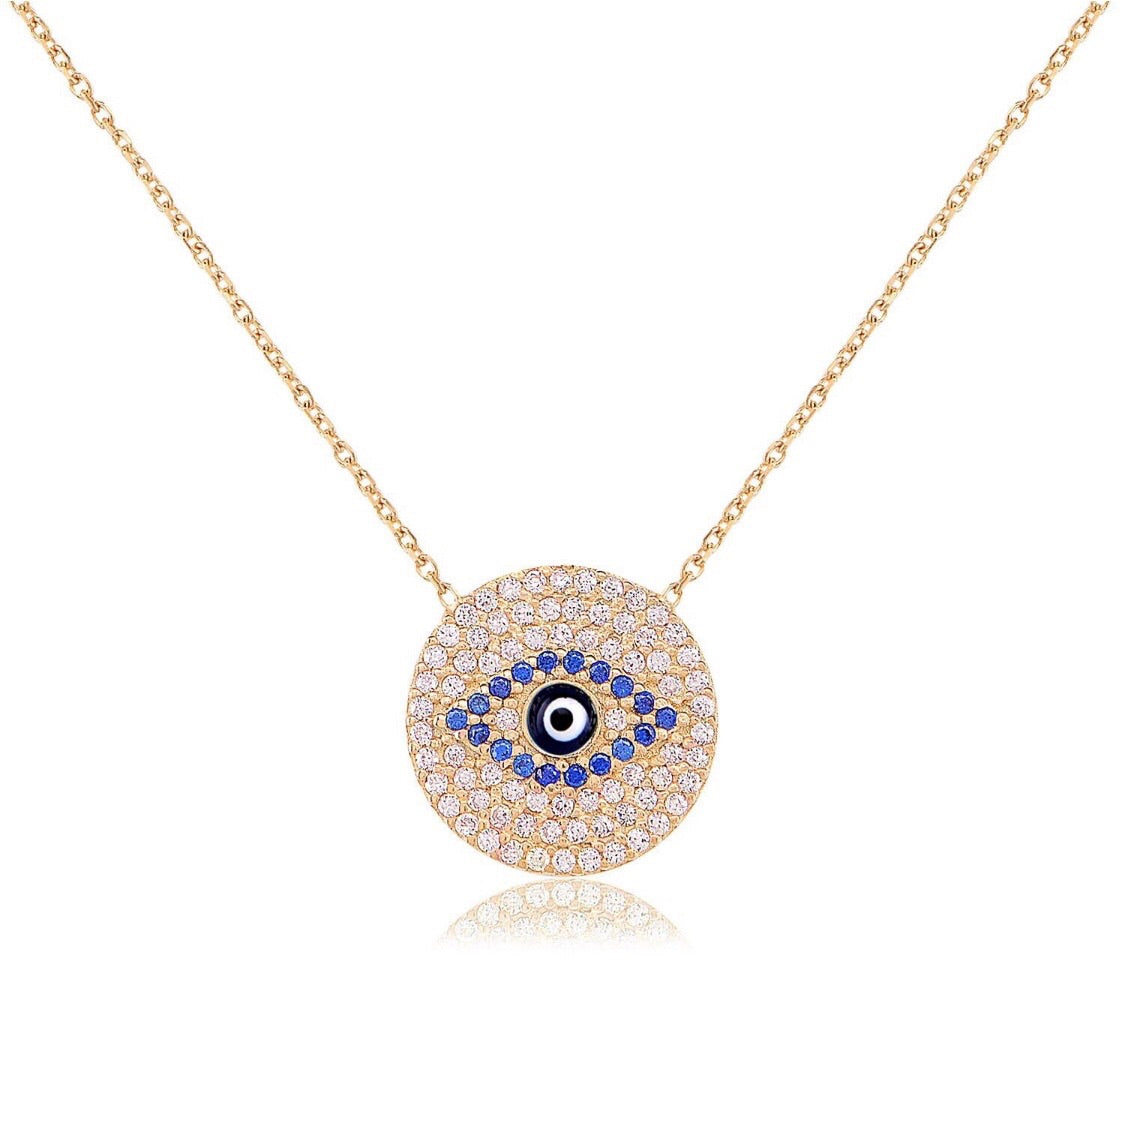 Ojos Necklace